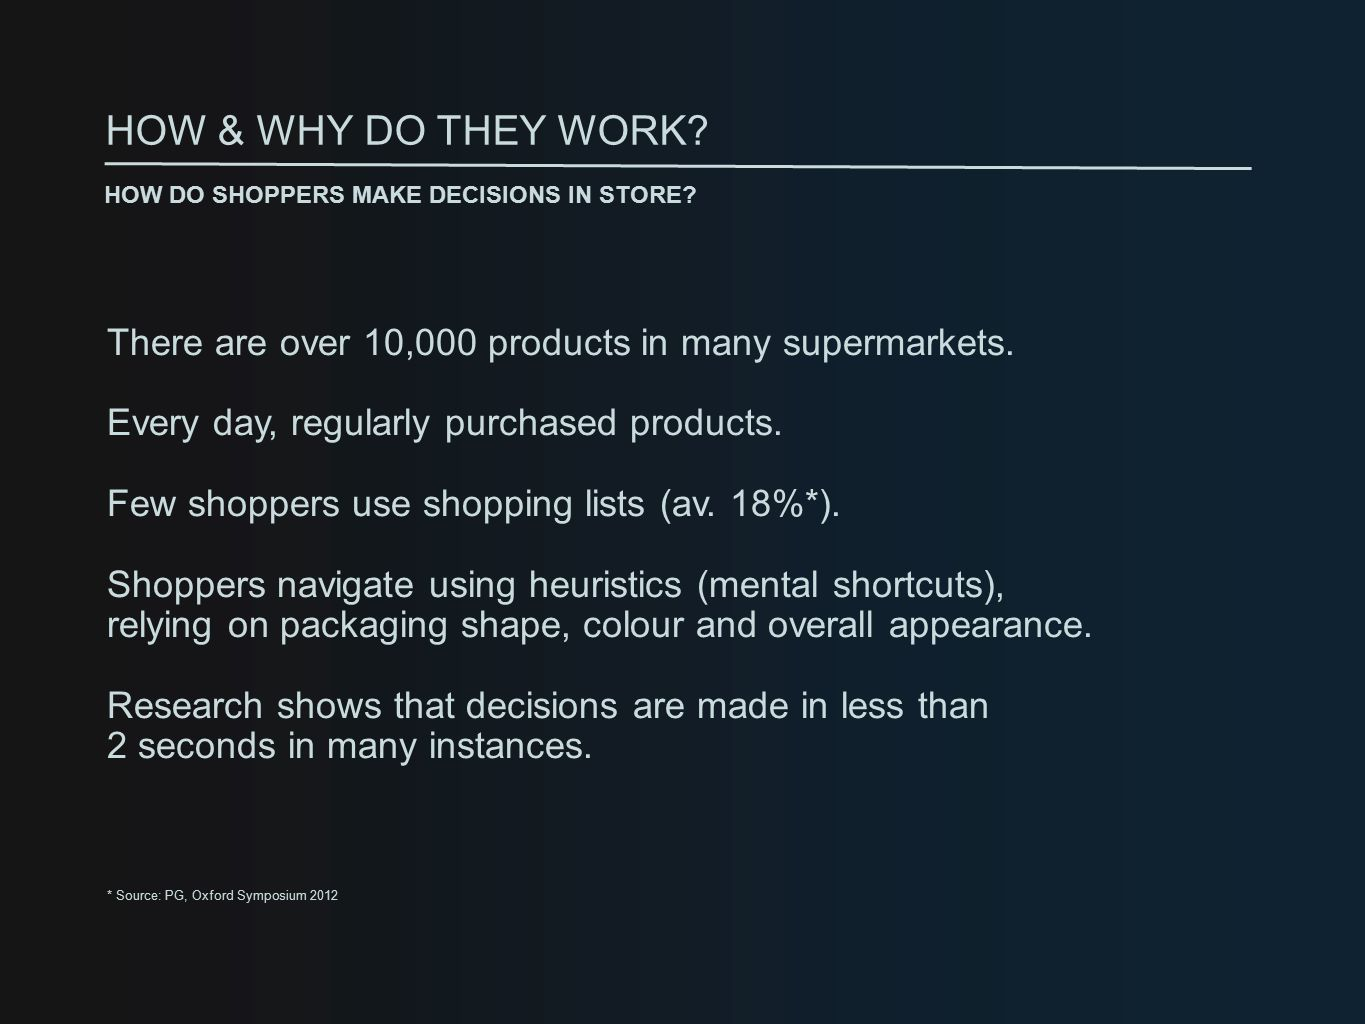 There are over 10,000 products in many supermarkets.